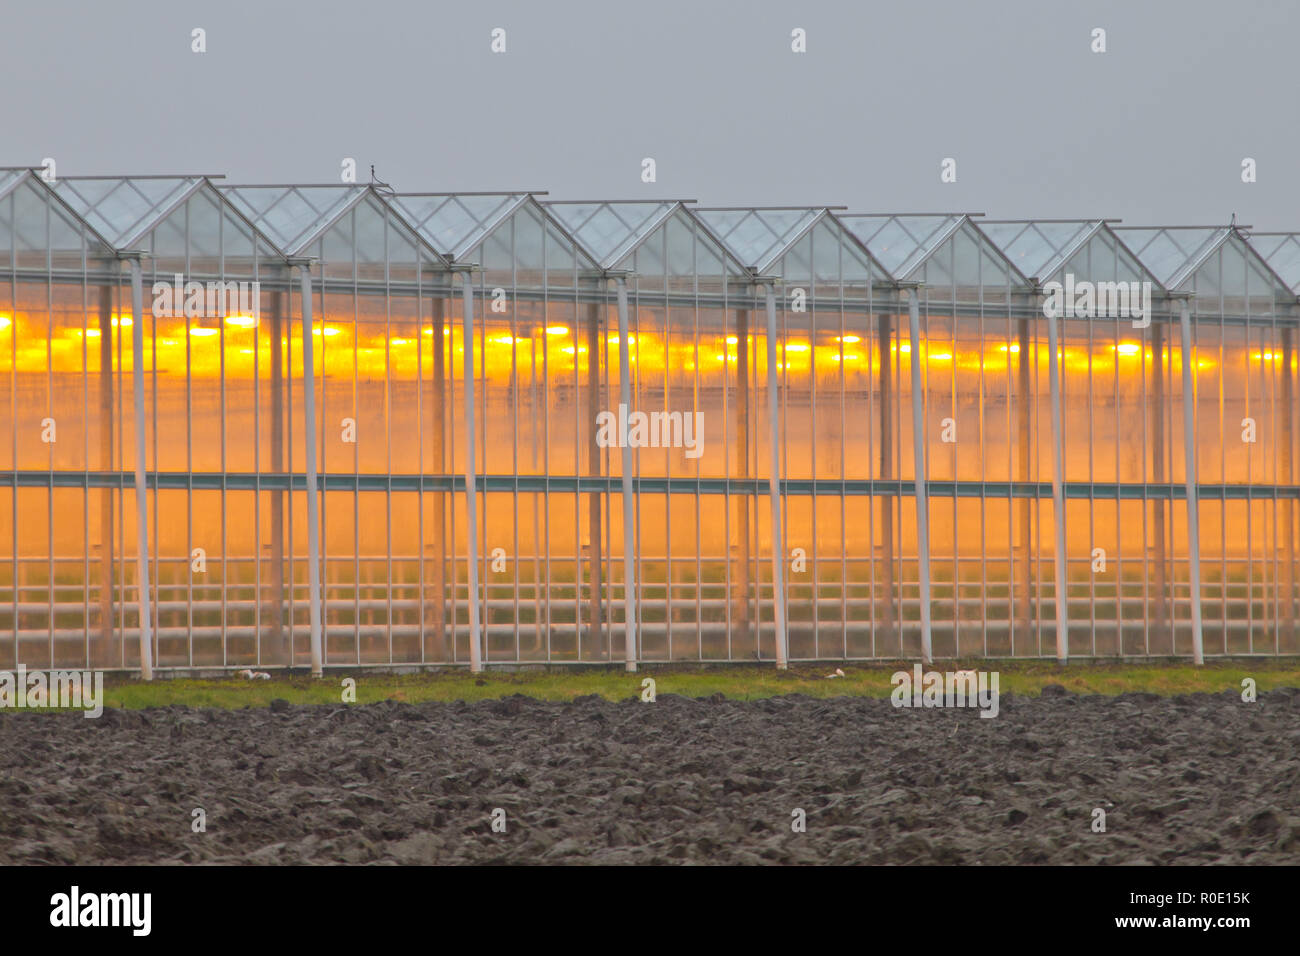 Exterior facade of a commercial greenhouse in the Netherlands - Stock Image